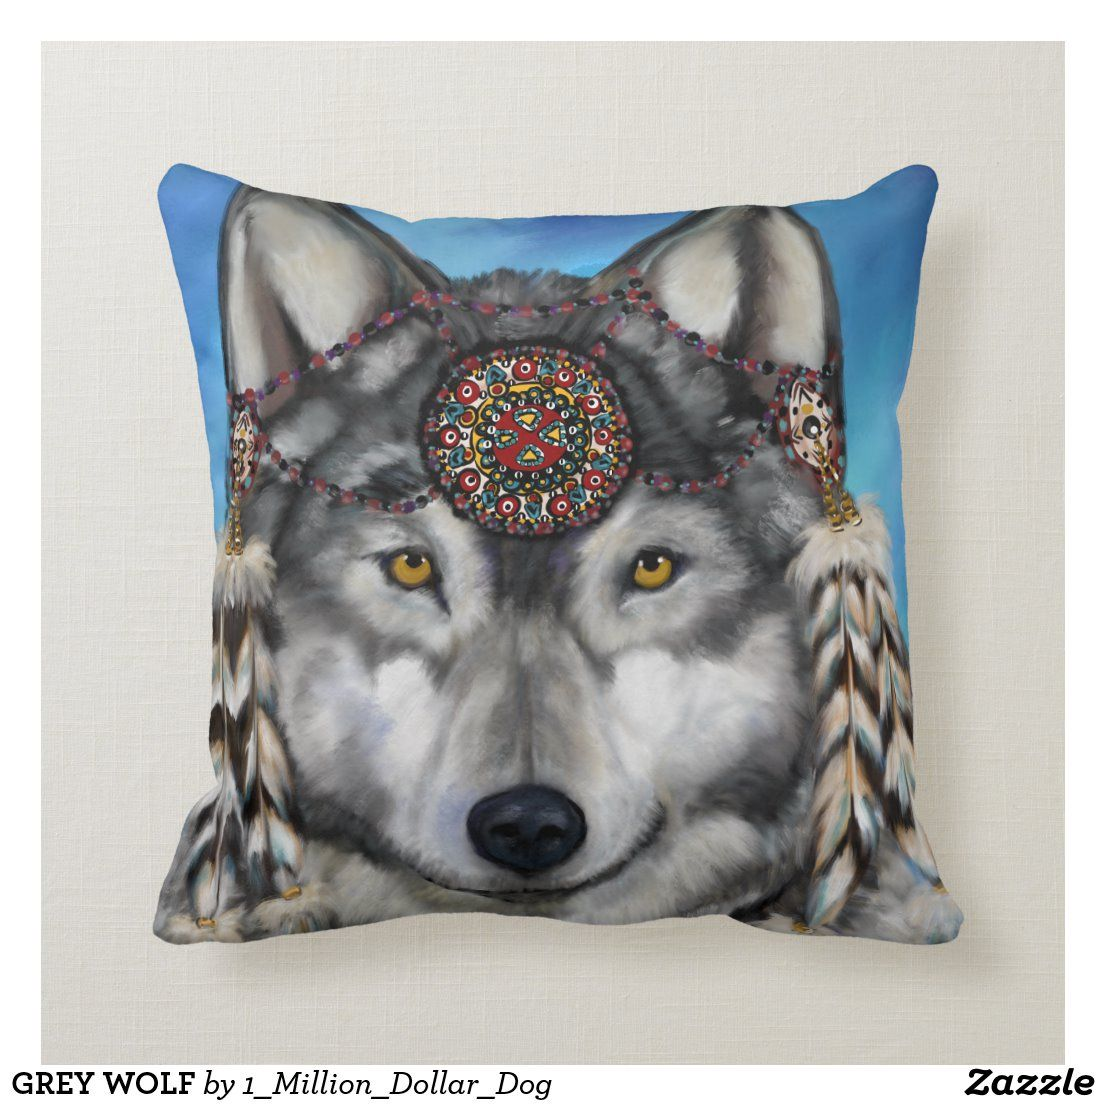 GREY WOLF THROW PILLOW in 2020 Throw